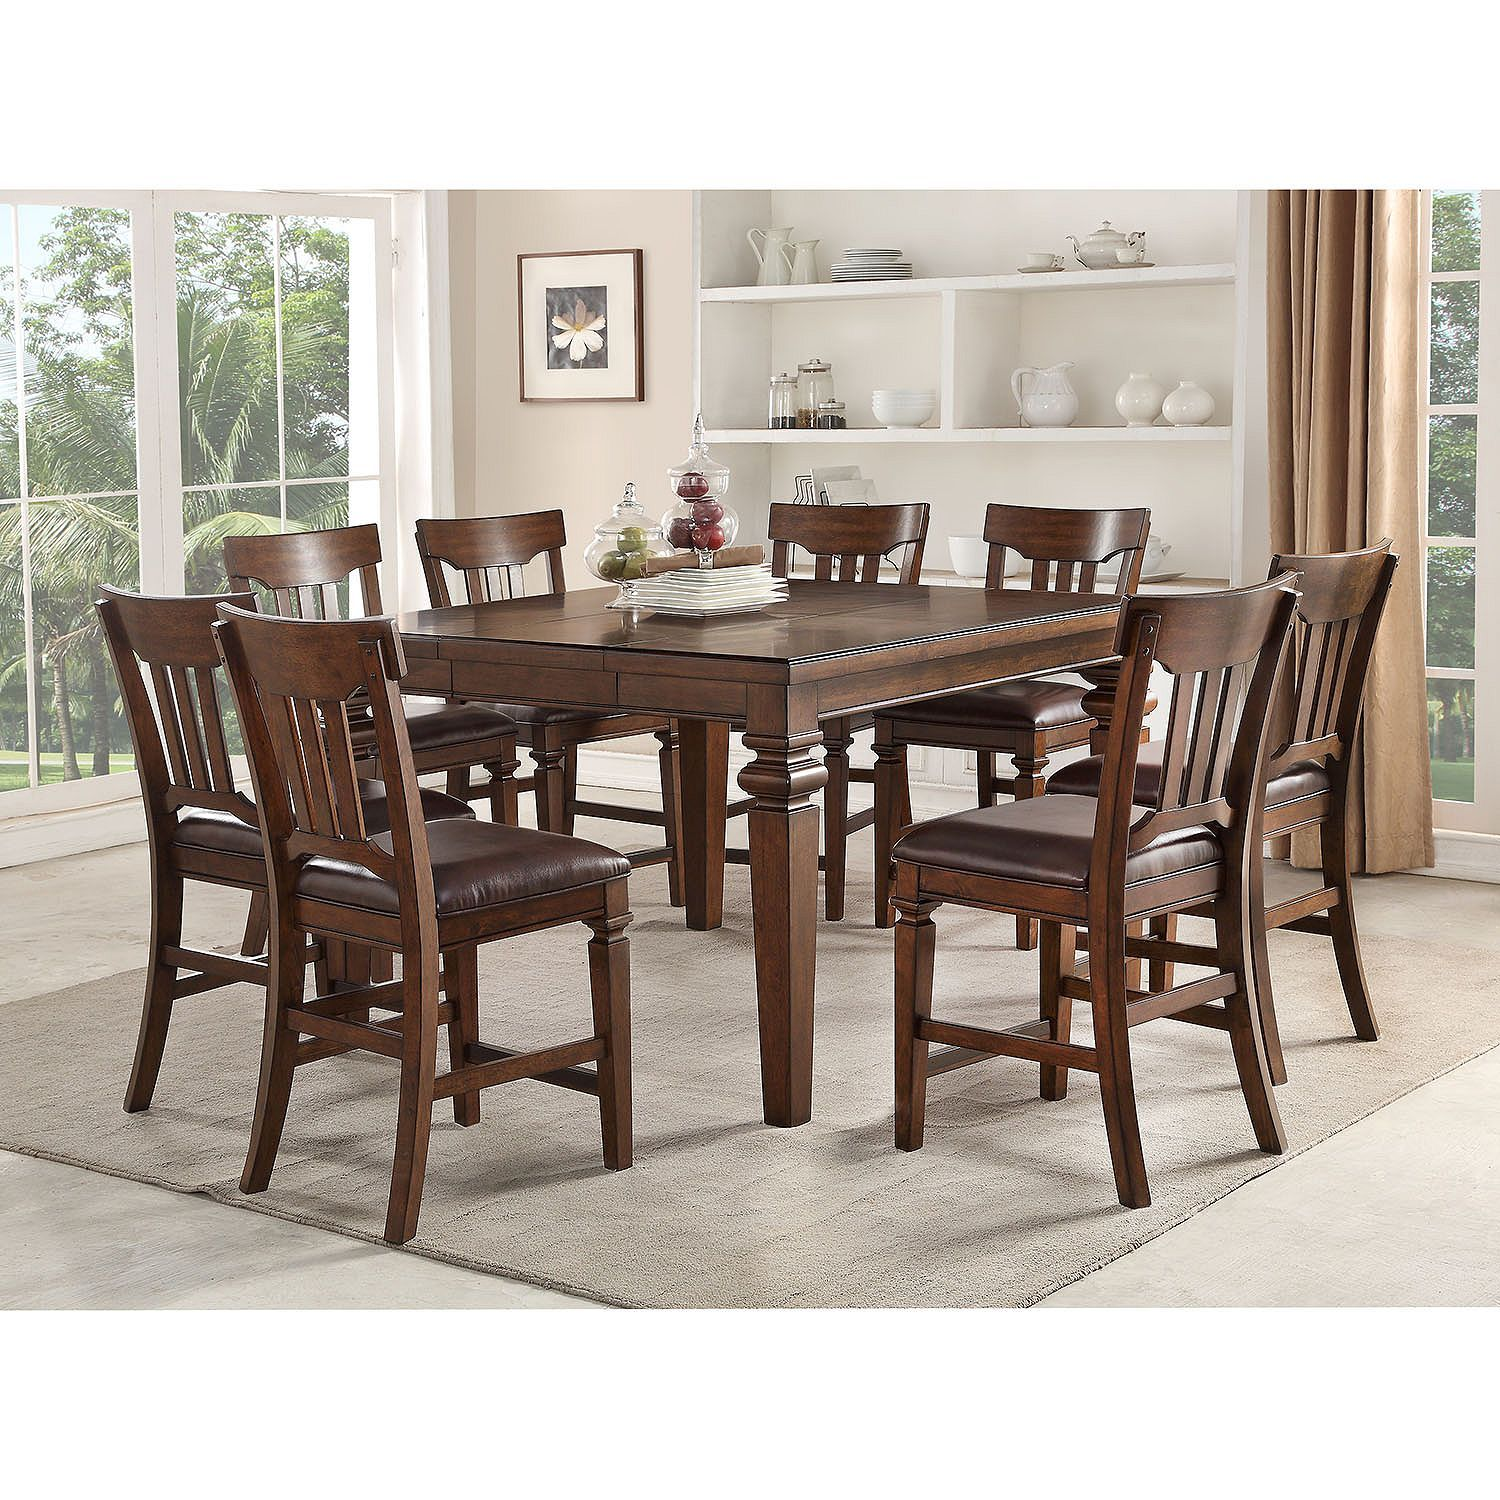 Member S Mark Carter 9 Piece Counter Height Dining Set Counter